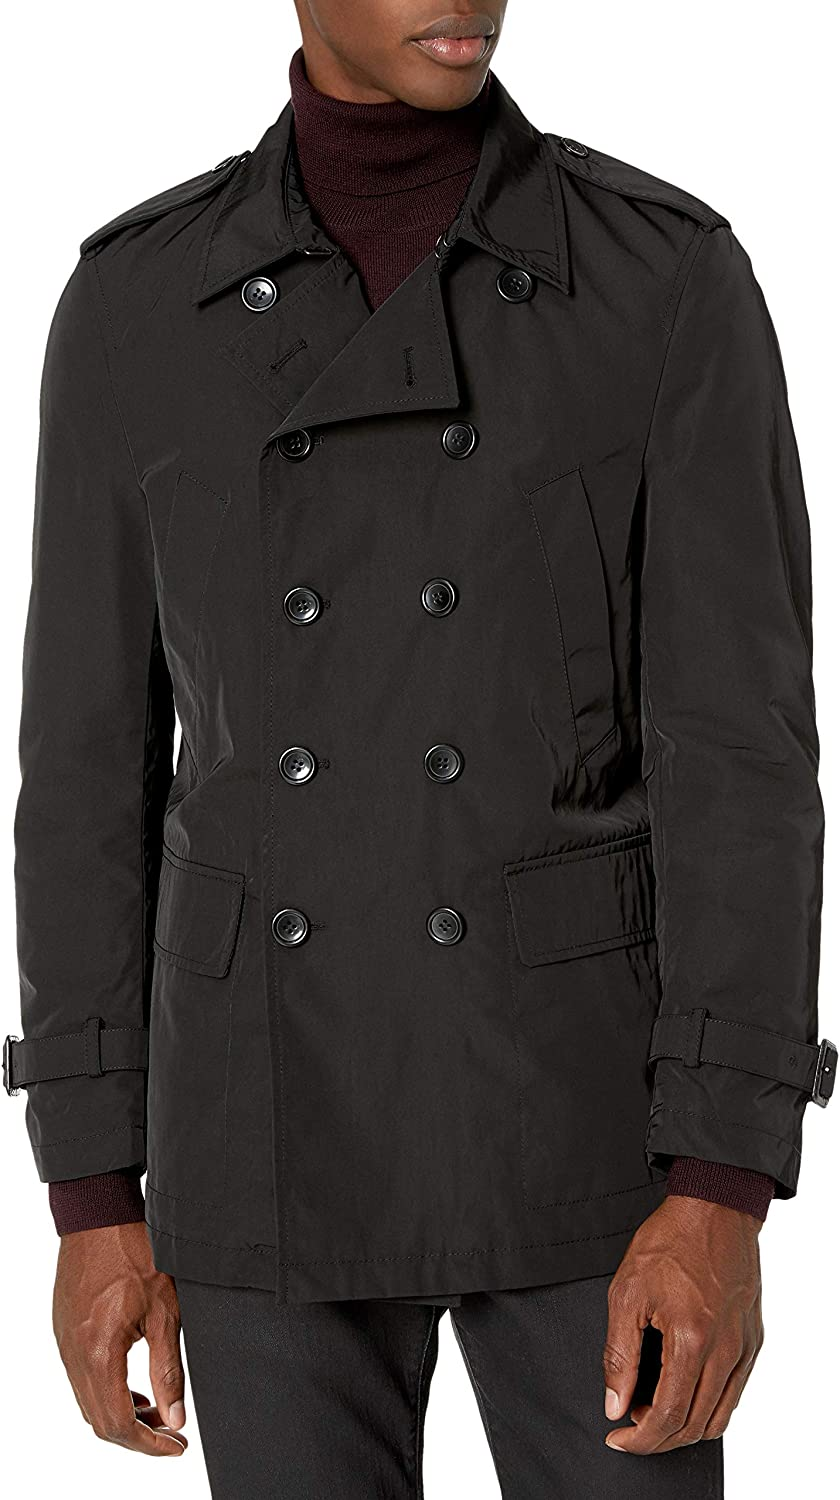 L black Tallia Mens Vogata Light Weight Peacoat